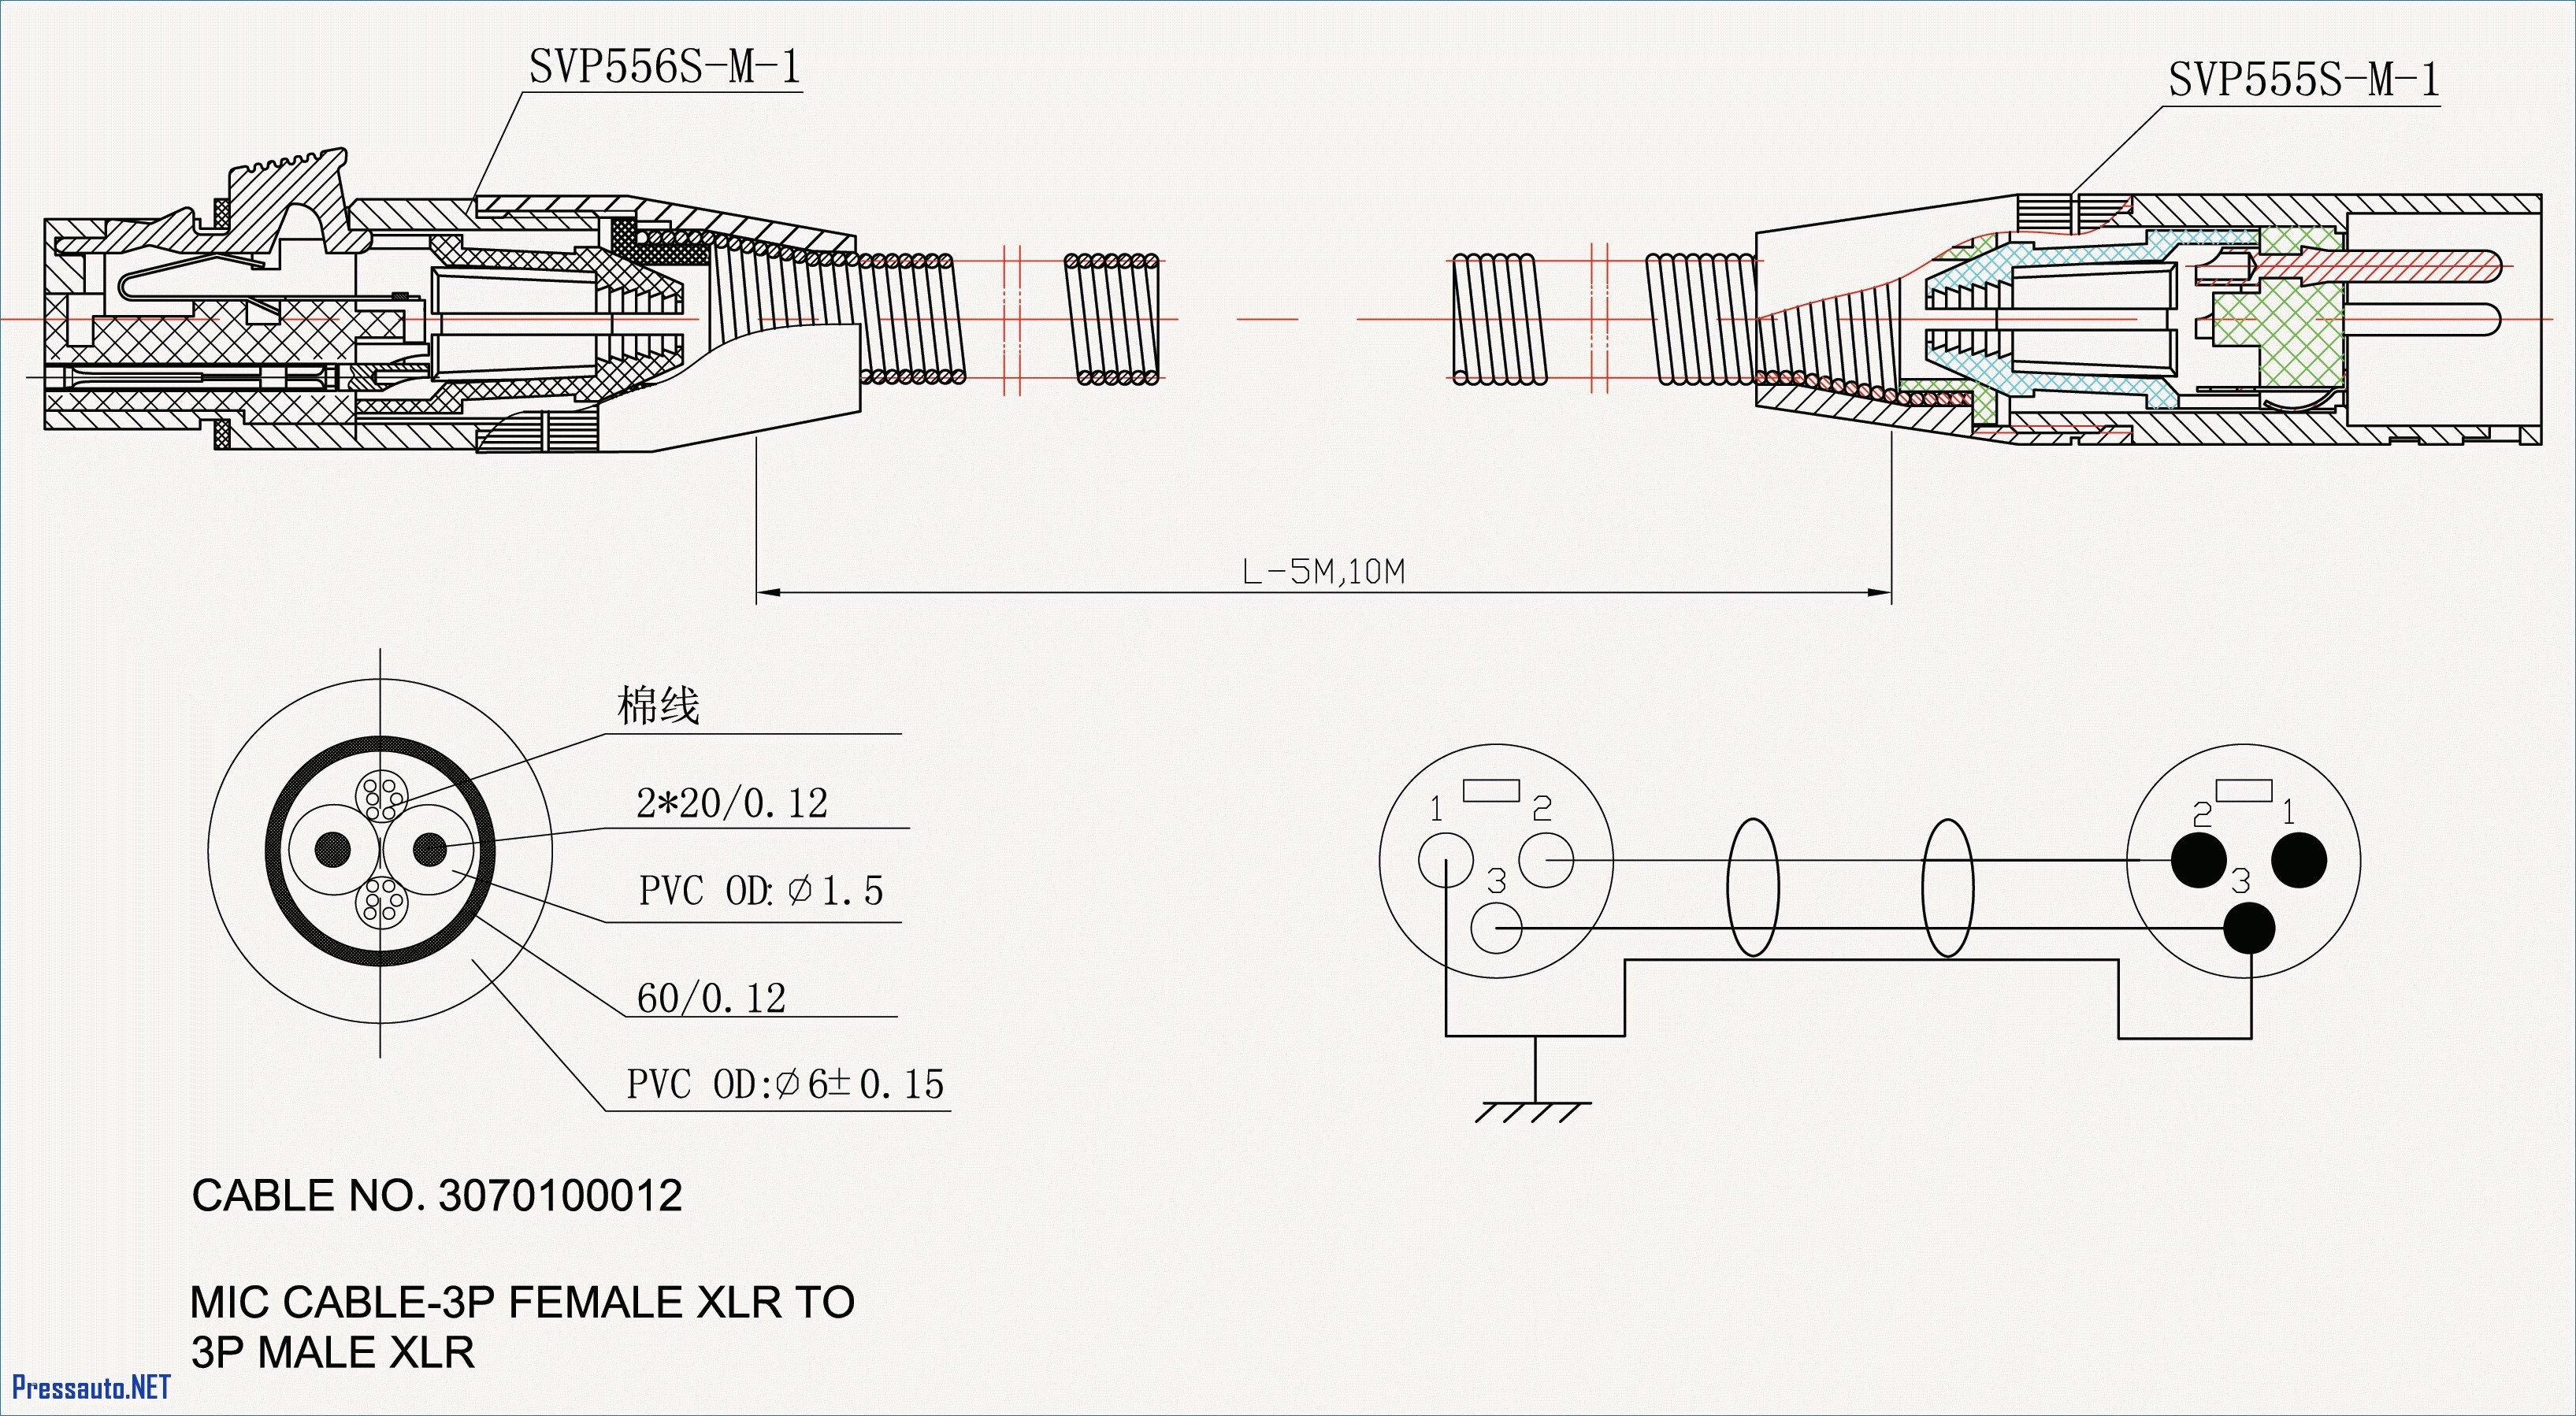 2005 ford Explorer 4 0 Engine Diagram ford Explorer Relay Diagram – Simple Wiring Diagram Of 2005 ford Explorer 4 0 Engine Diagram 2005 ford F 350 Wiring Diagram Another Blog About Wiring Diagram •